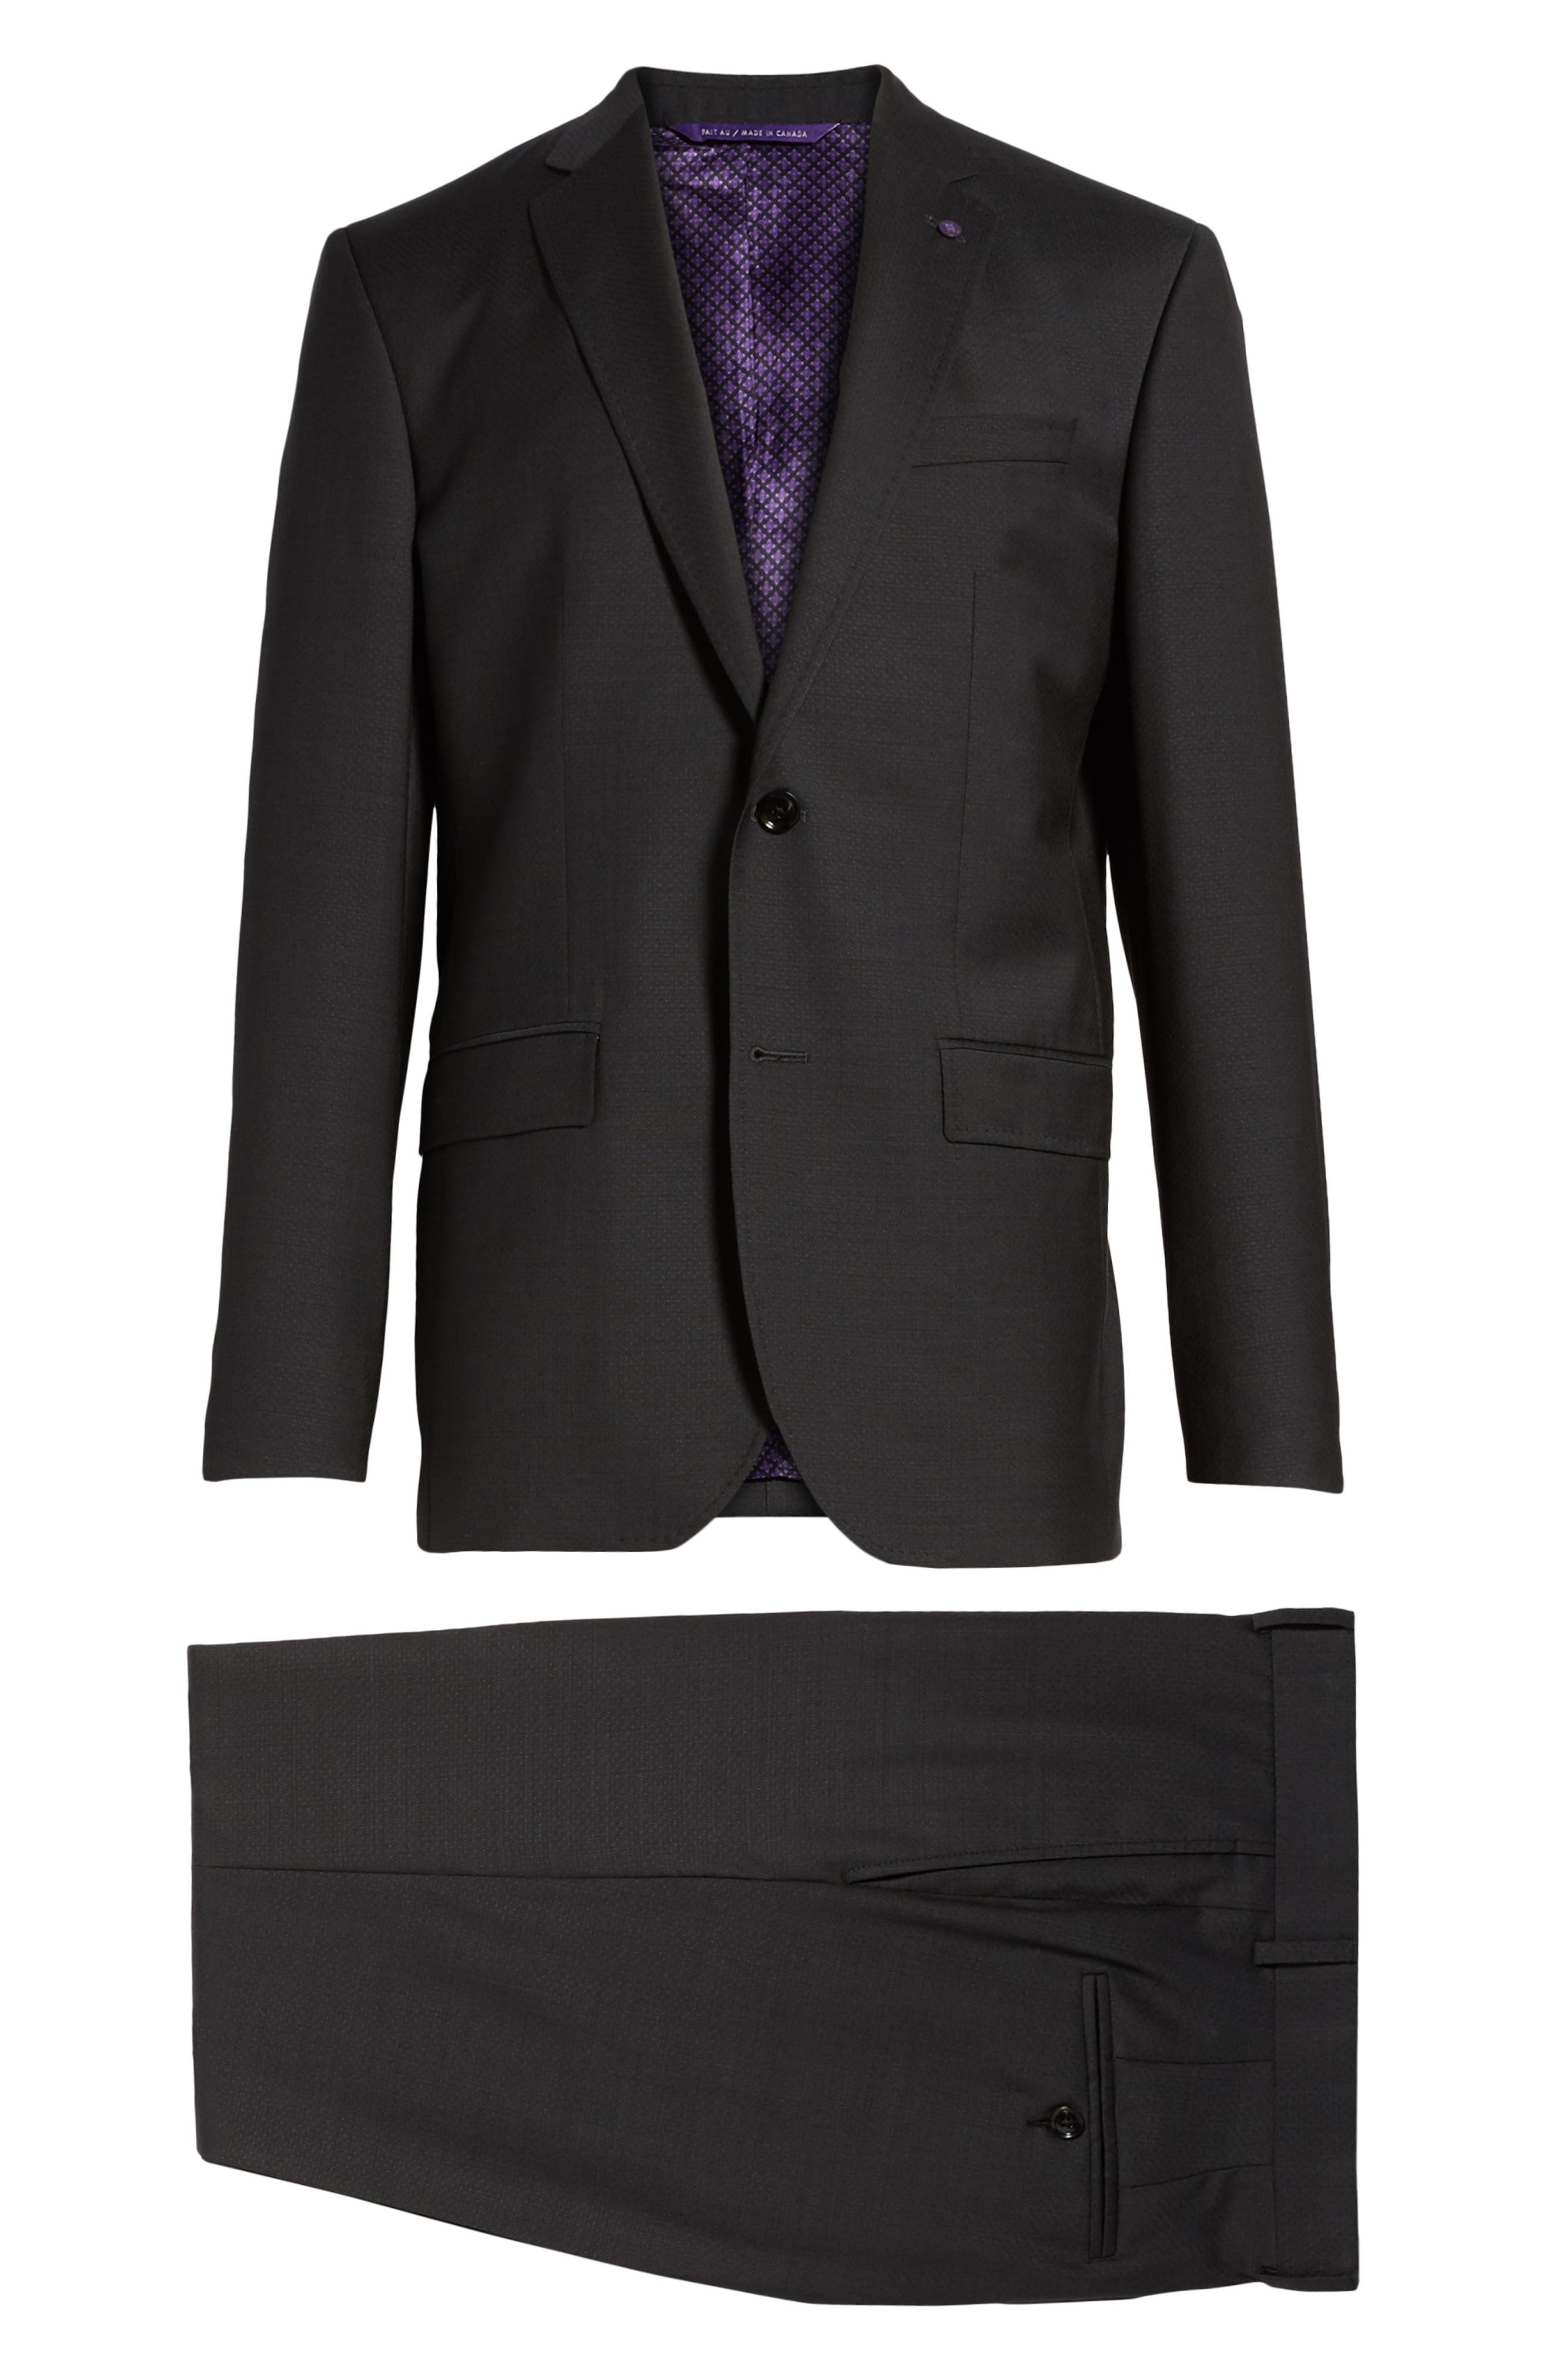 Jay Trim Fit Solid Wool Suit,                             Alternate thumbnail 8, color,                             001